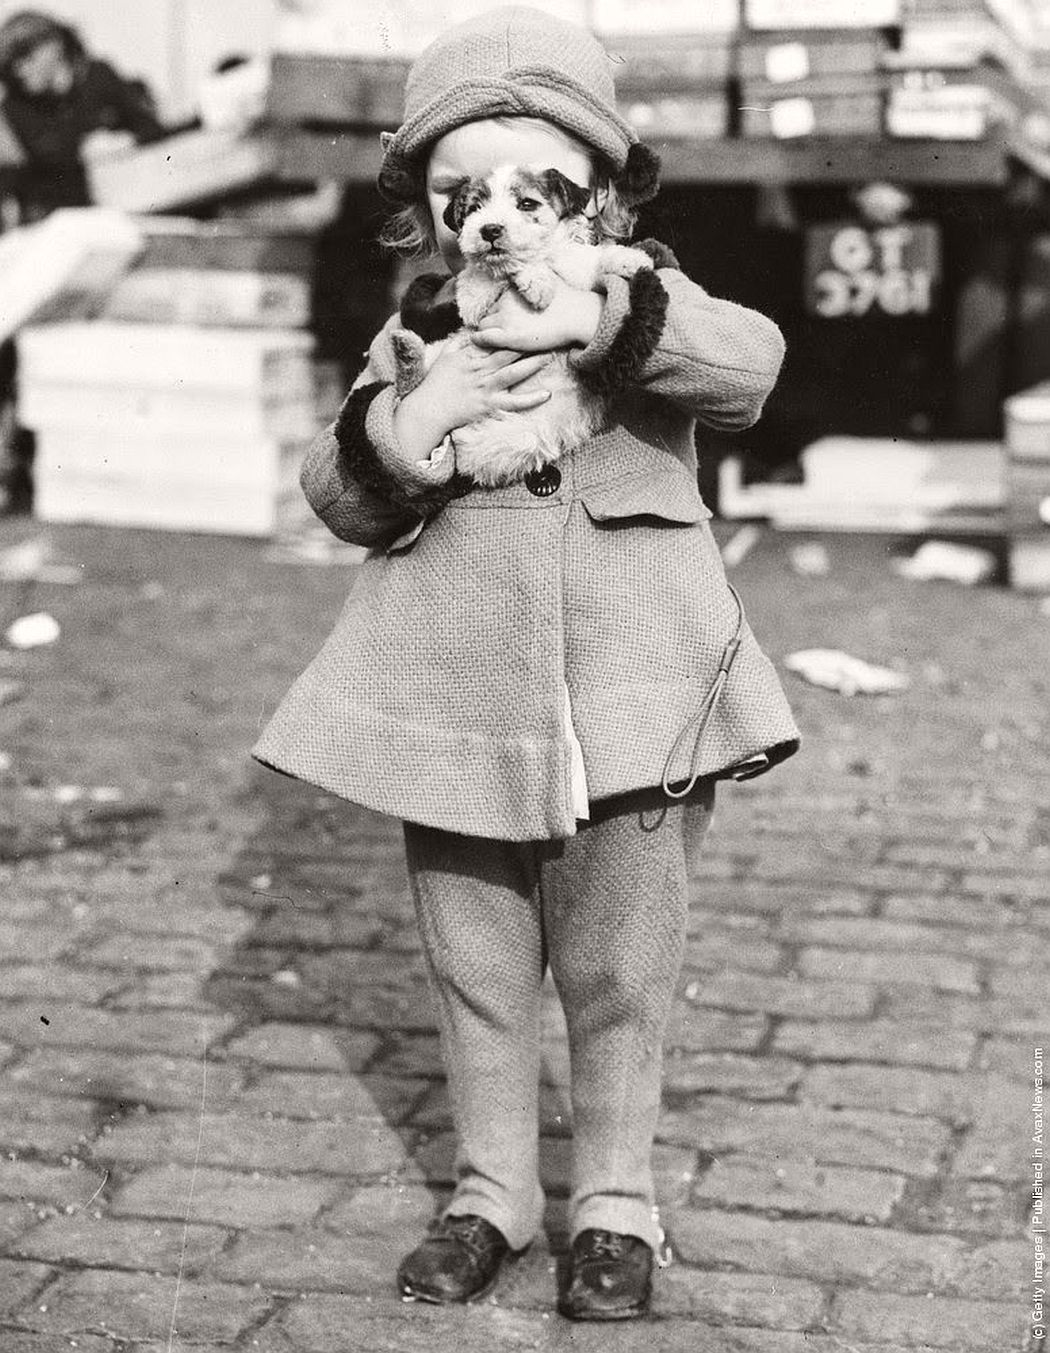 vintage-people-with-baby-animals-1930s-1960s-22